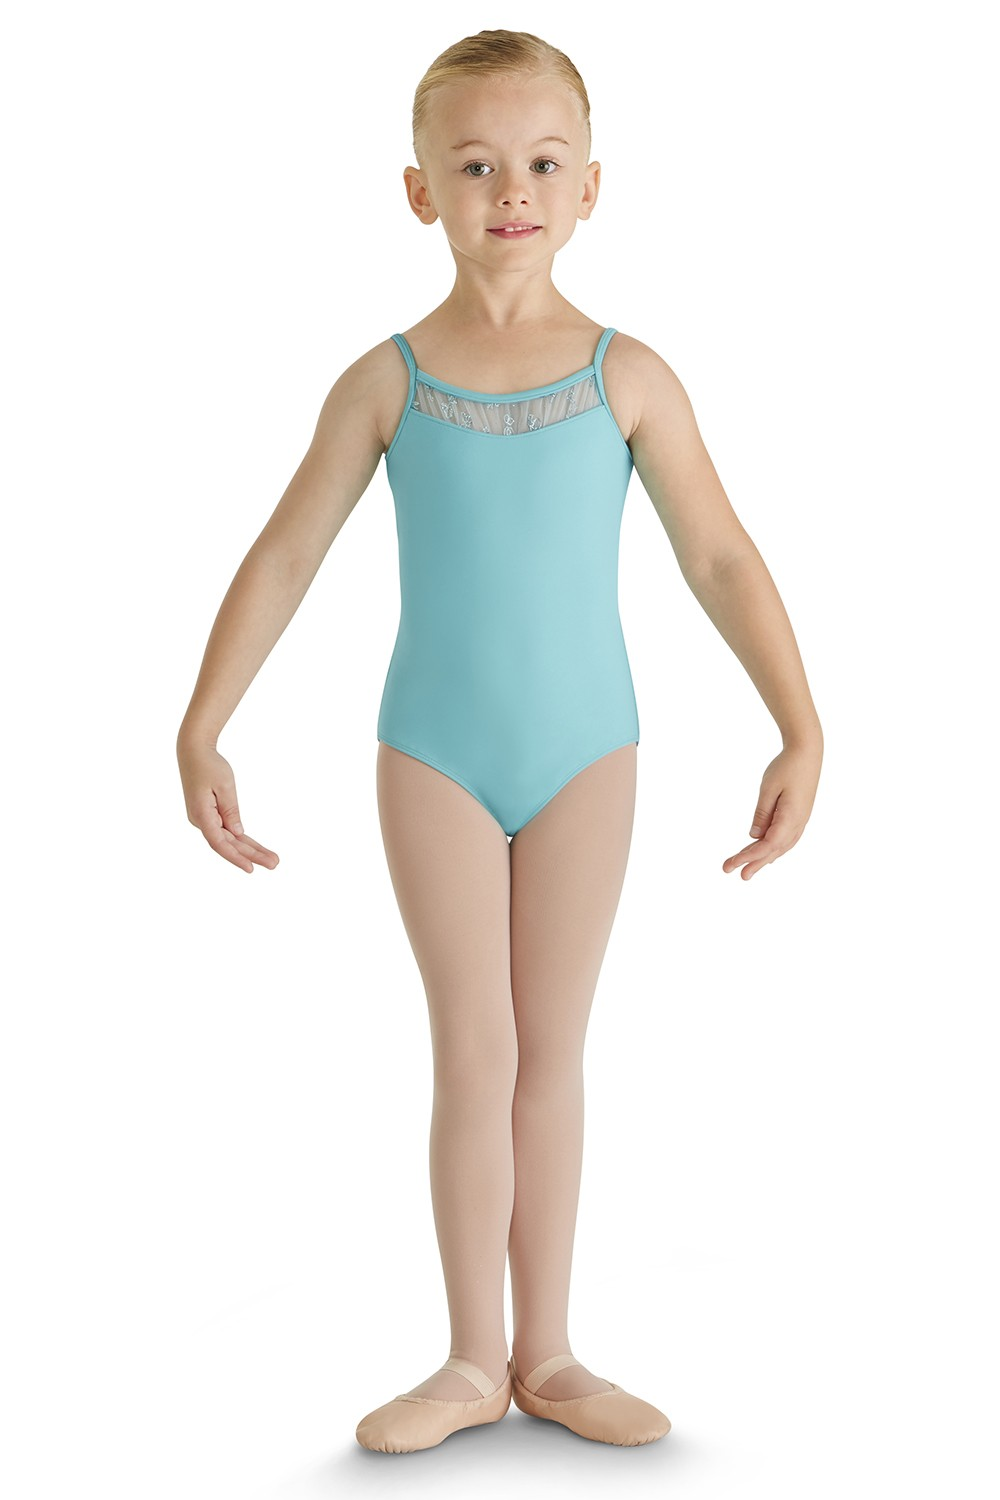 Goidron Girls Camisole Leotards